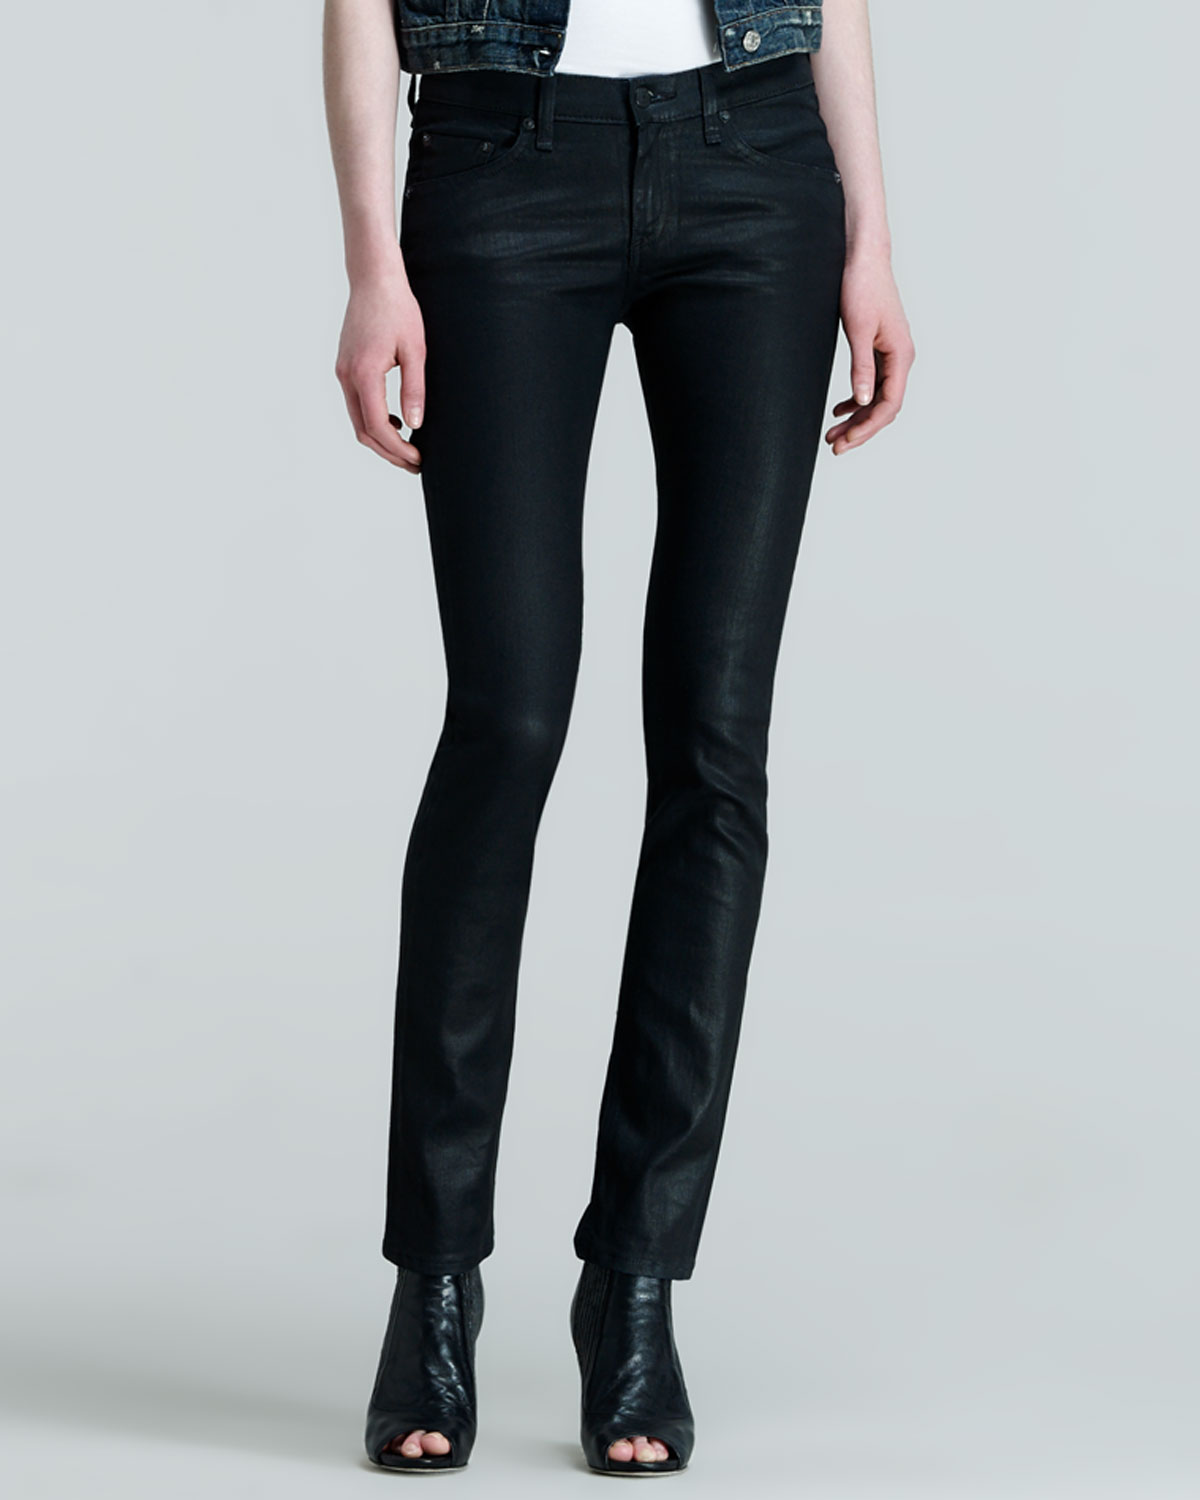 Womens The Skinny Black Coated Jeans   rag & bone/JEAN   Coated black (29)